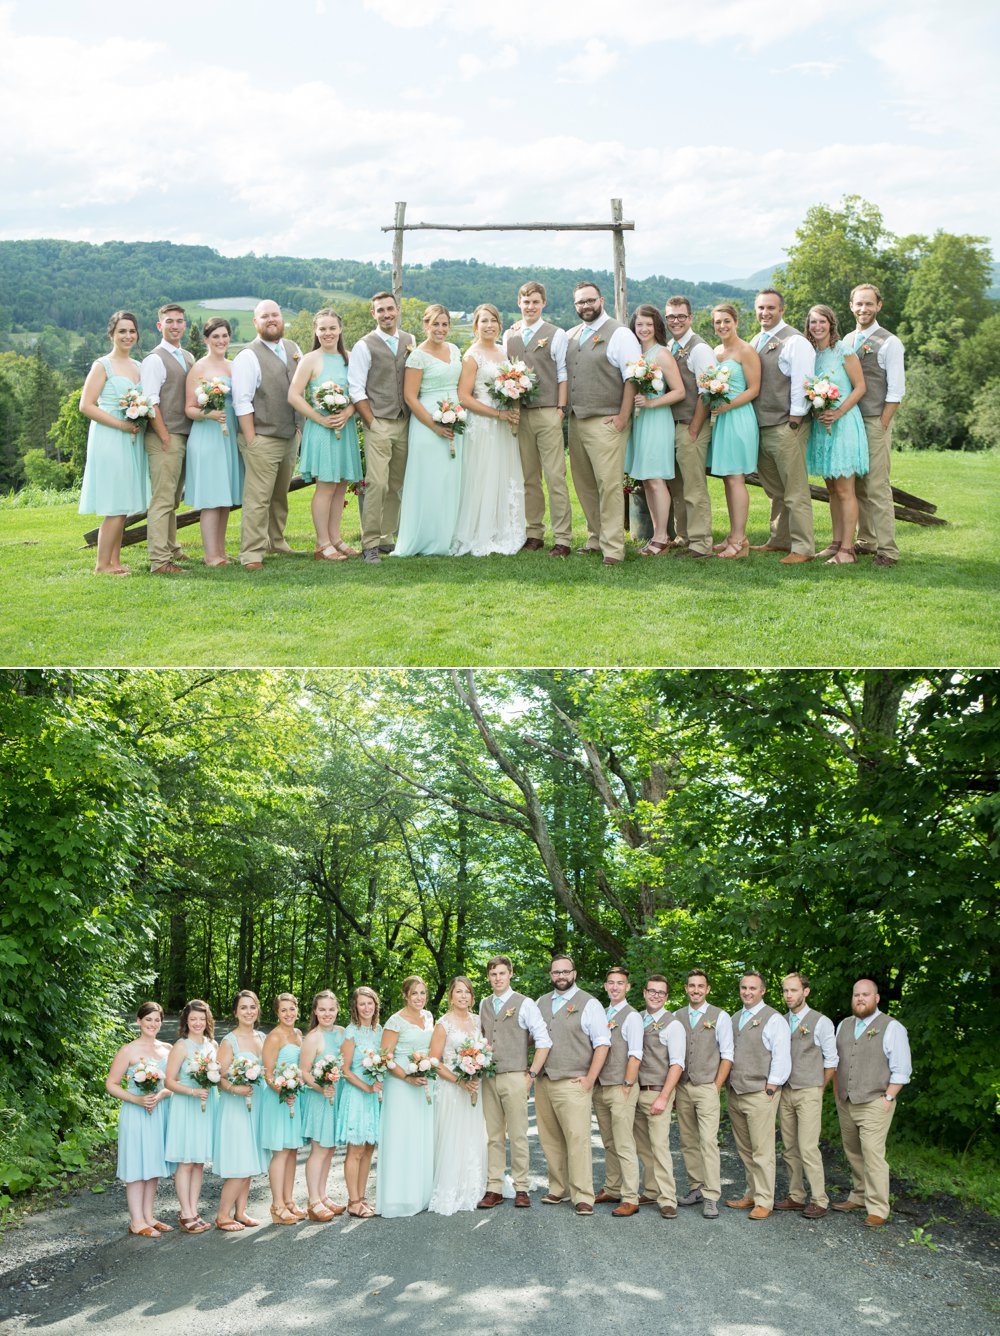 SomerbyJonesPhotography_VermontWedding_CyrBarn_CryBarnWedding_0031.jpg